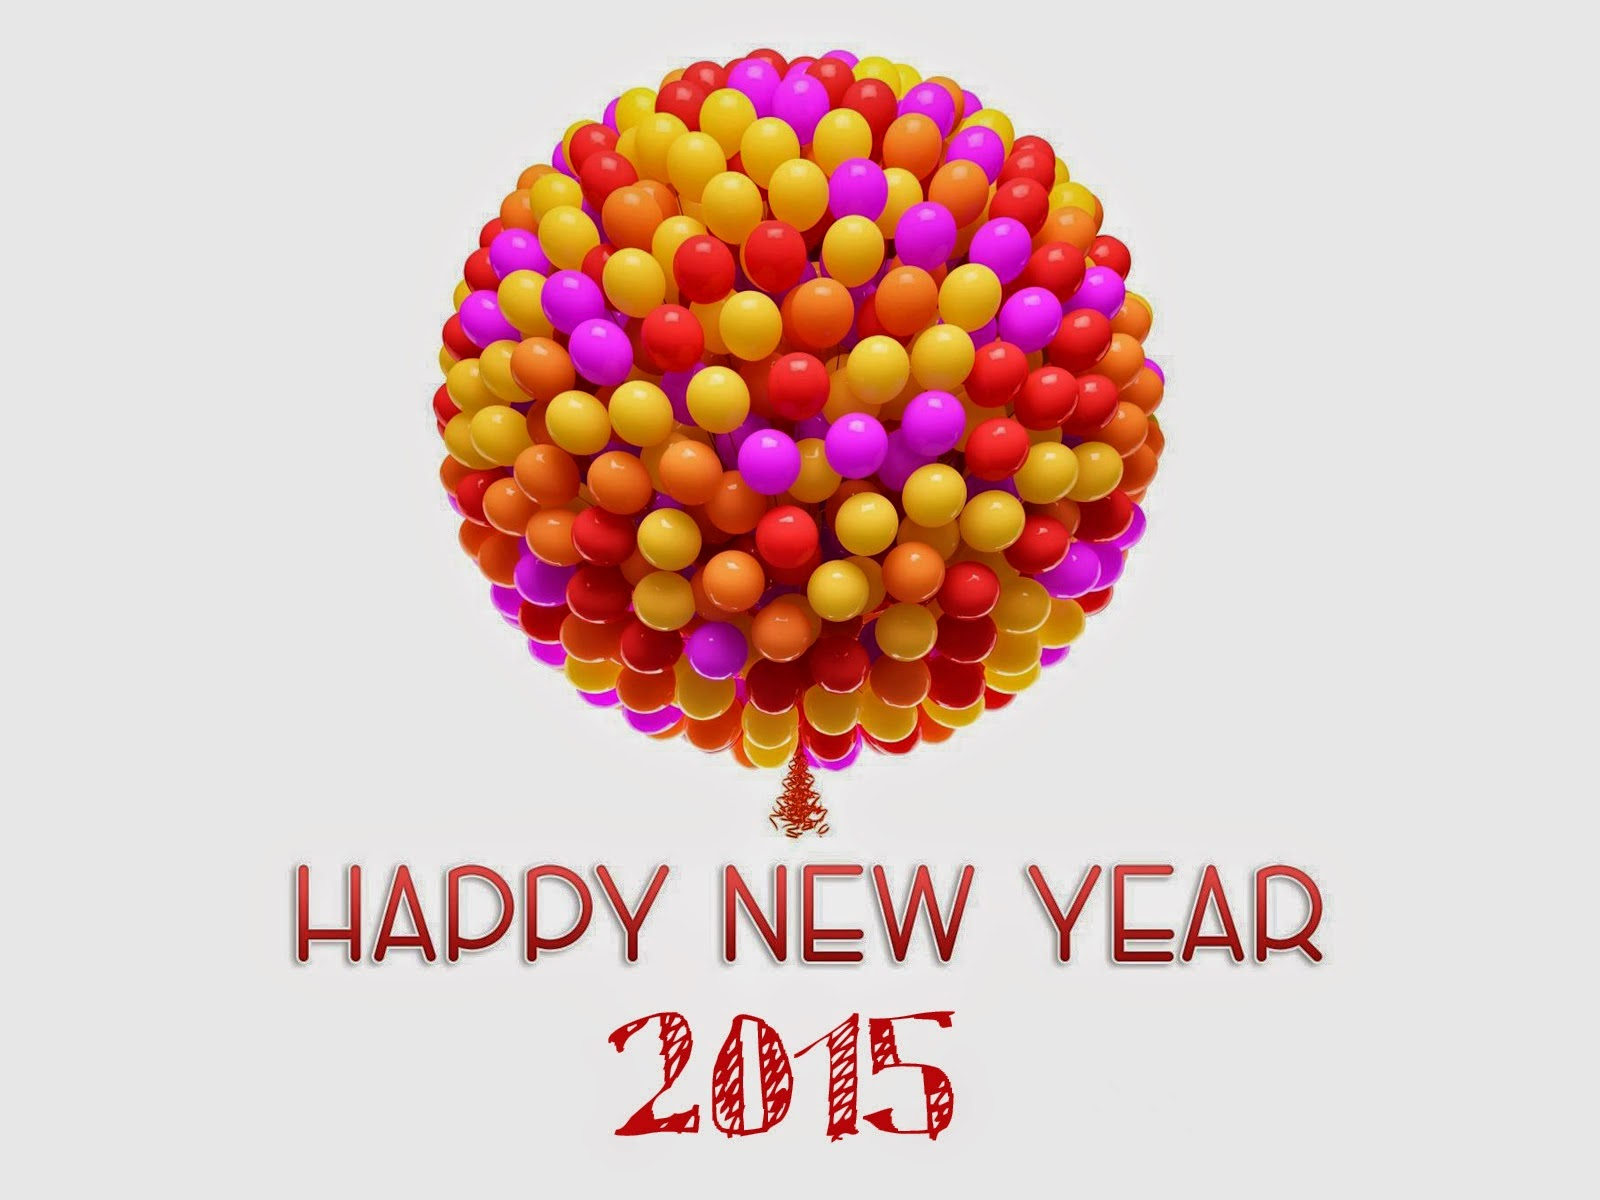 happy new year 2015 free wallpaper download